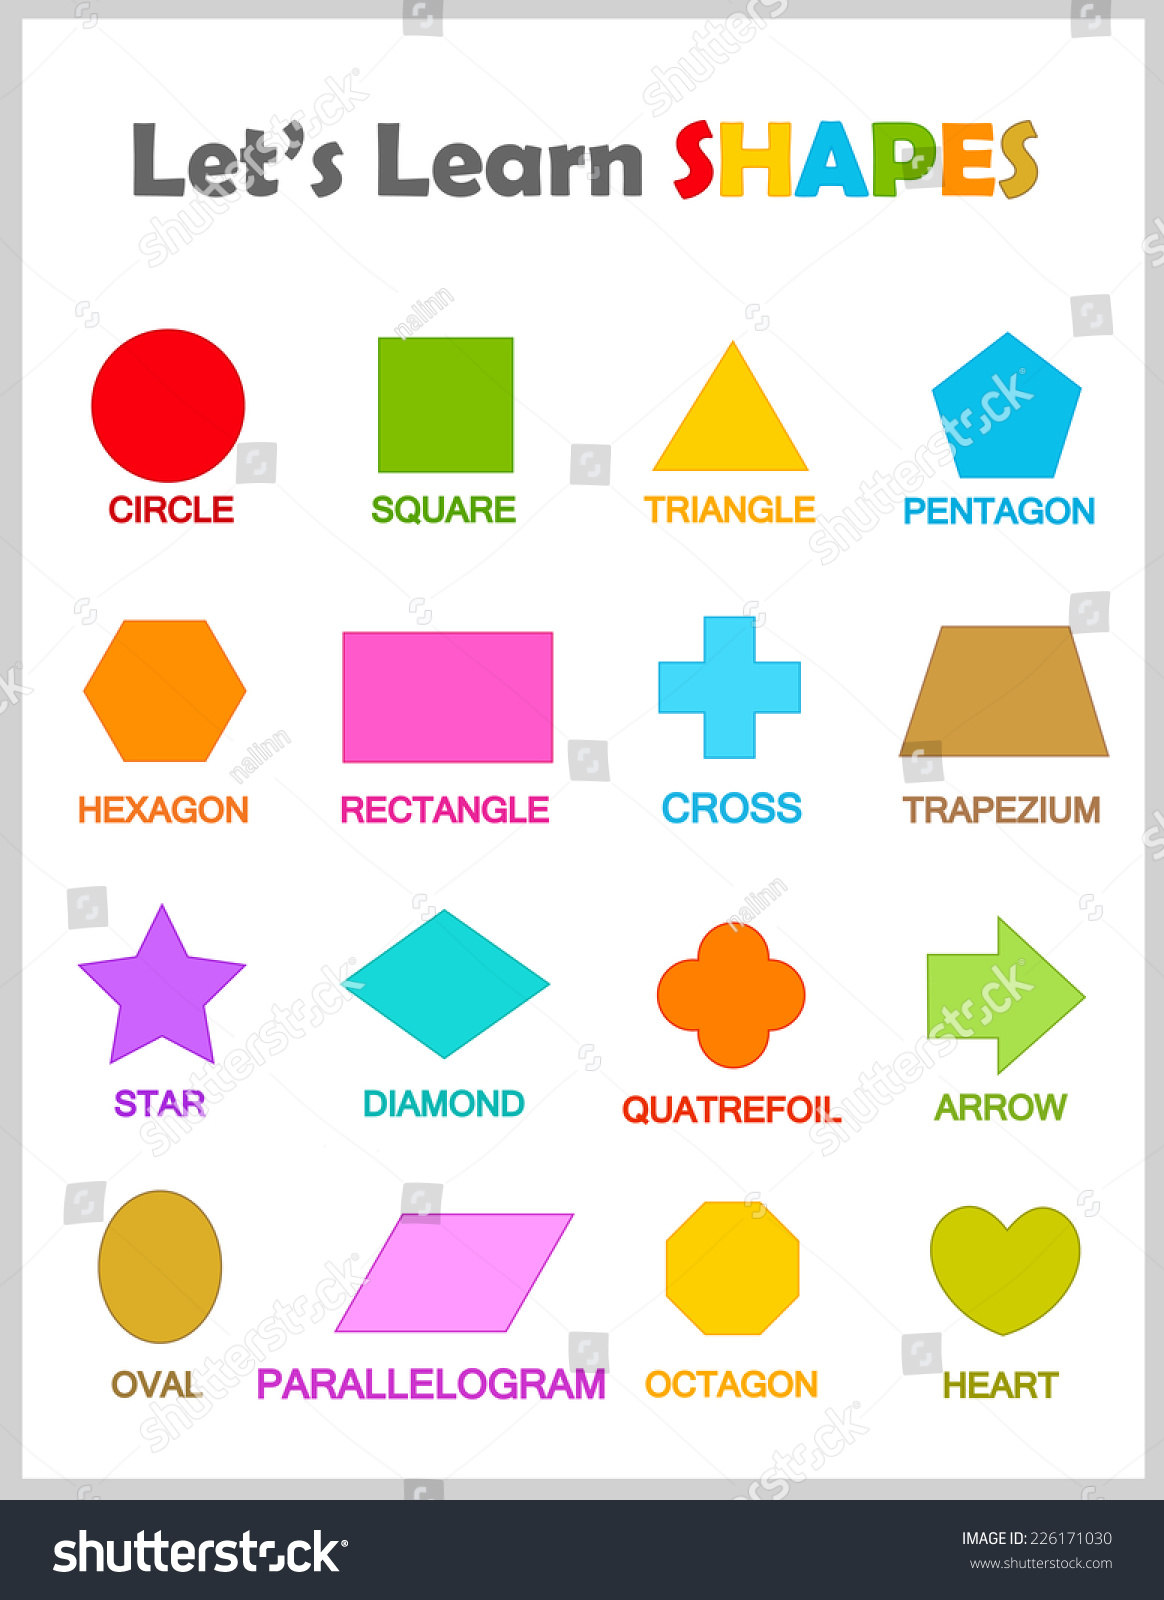 Printables Maths Shapes With Names Messygracebook